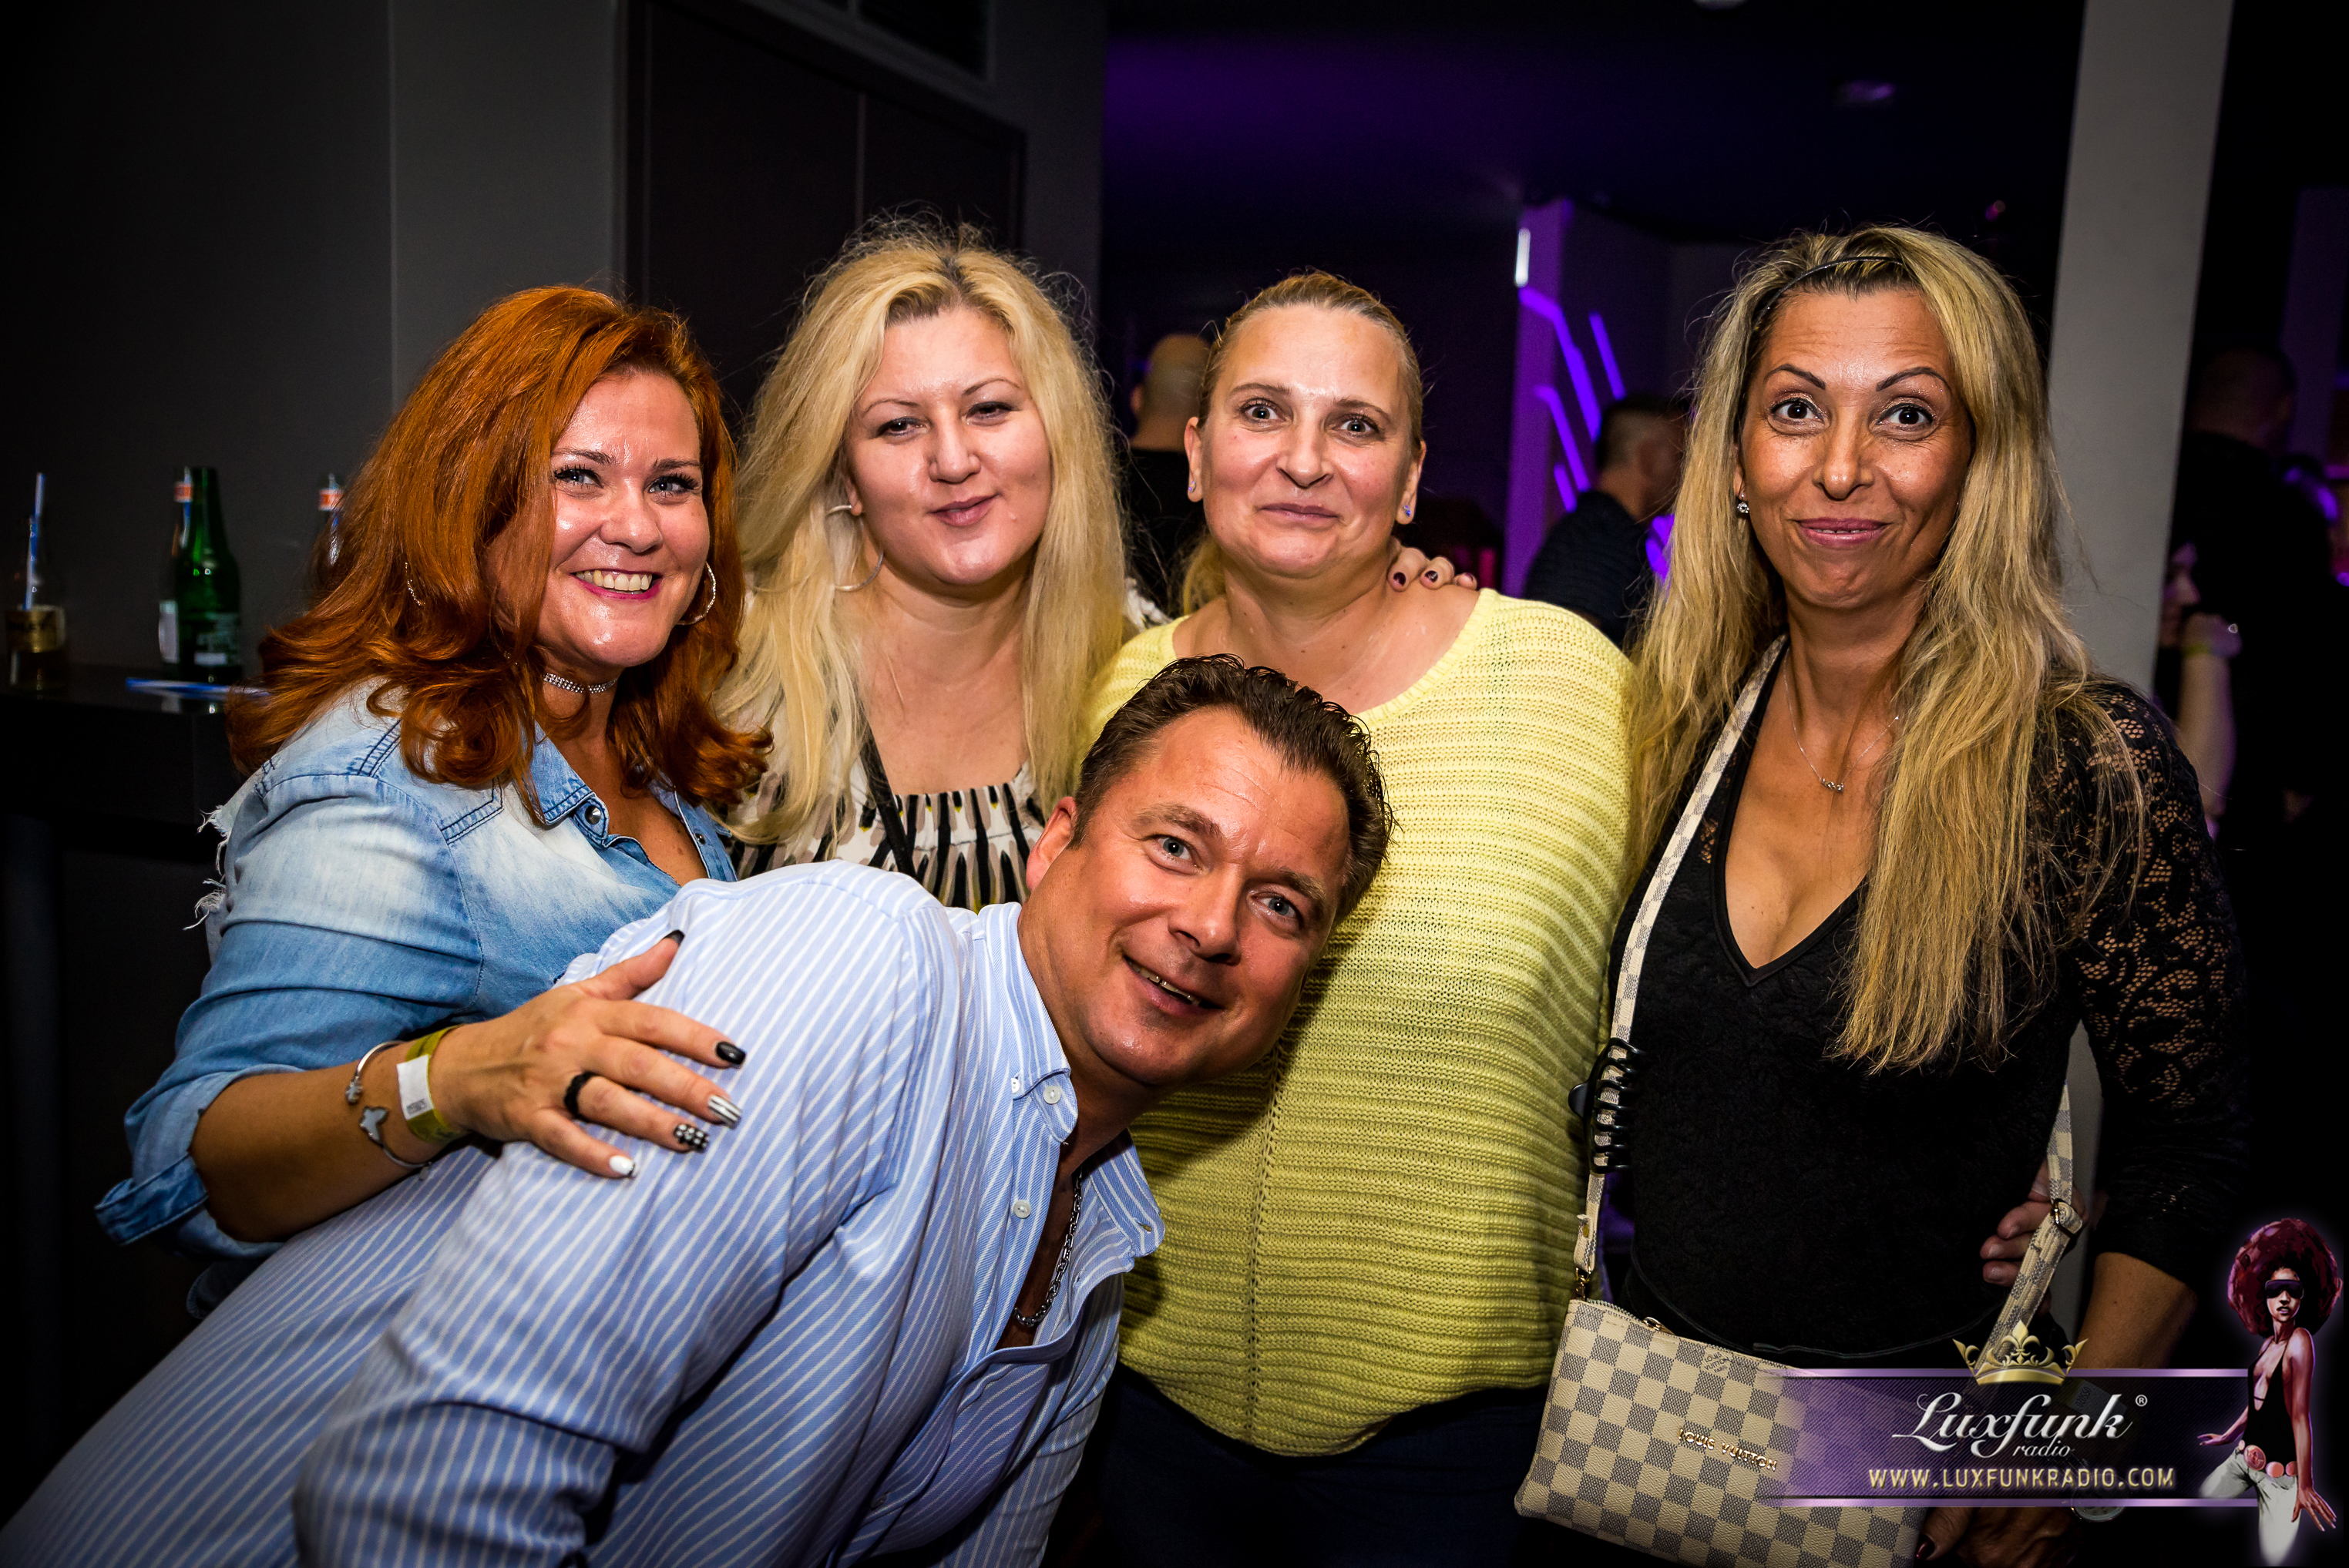 luxfunk-radio-funky-party-20191108-lock-budapest-1345